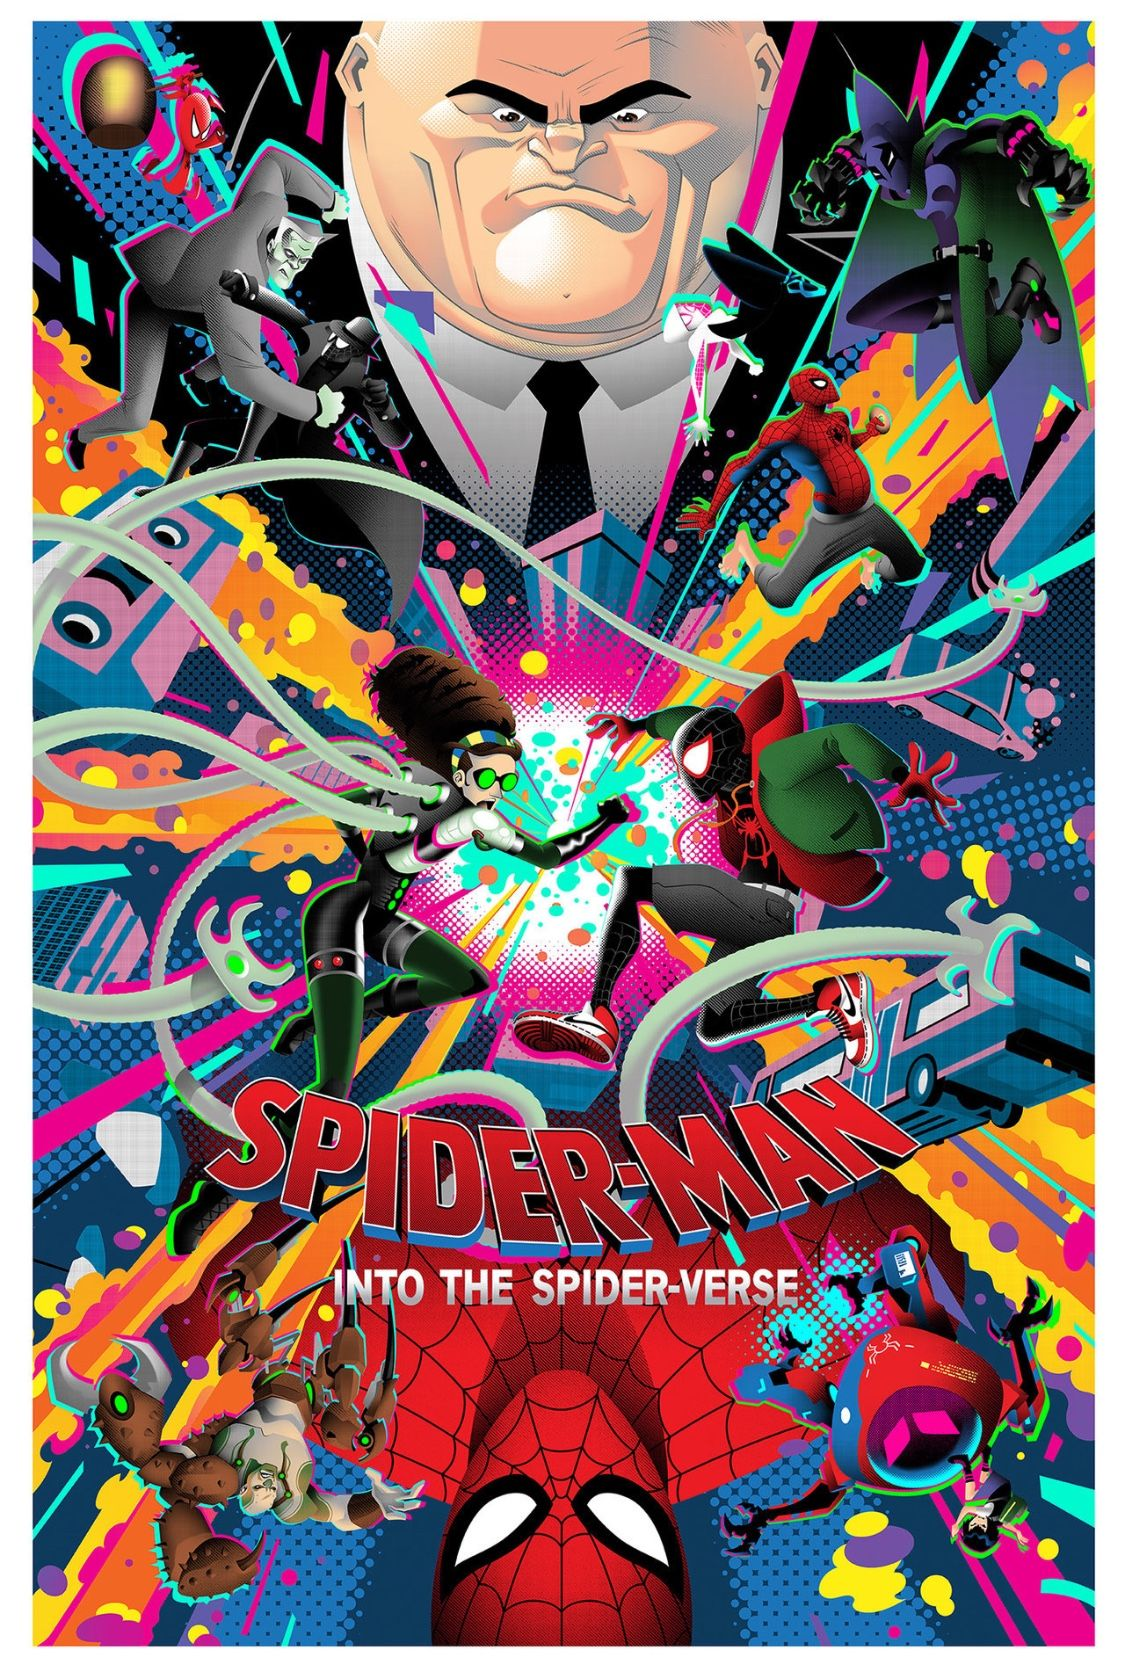 SPIDER 🕷 MAN • Into The SpiderVerse (With images